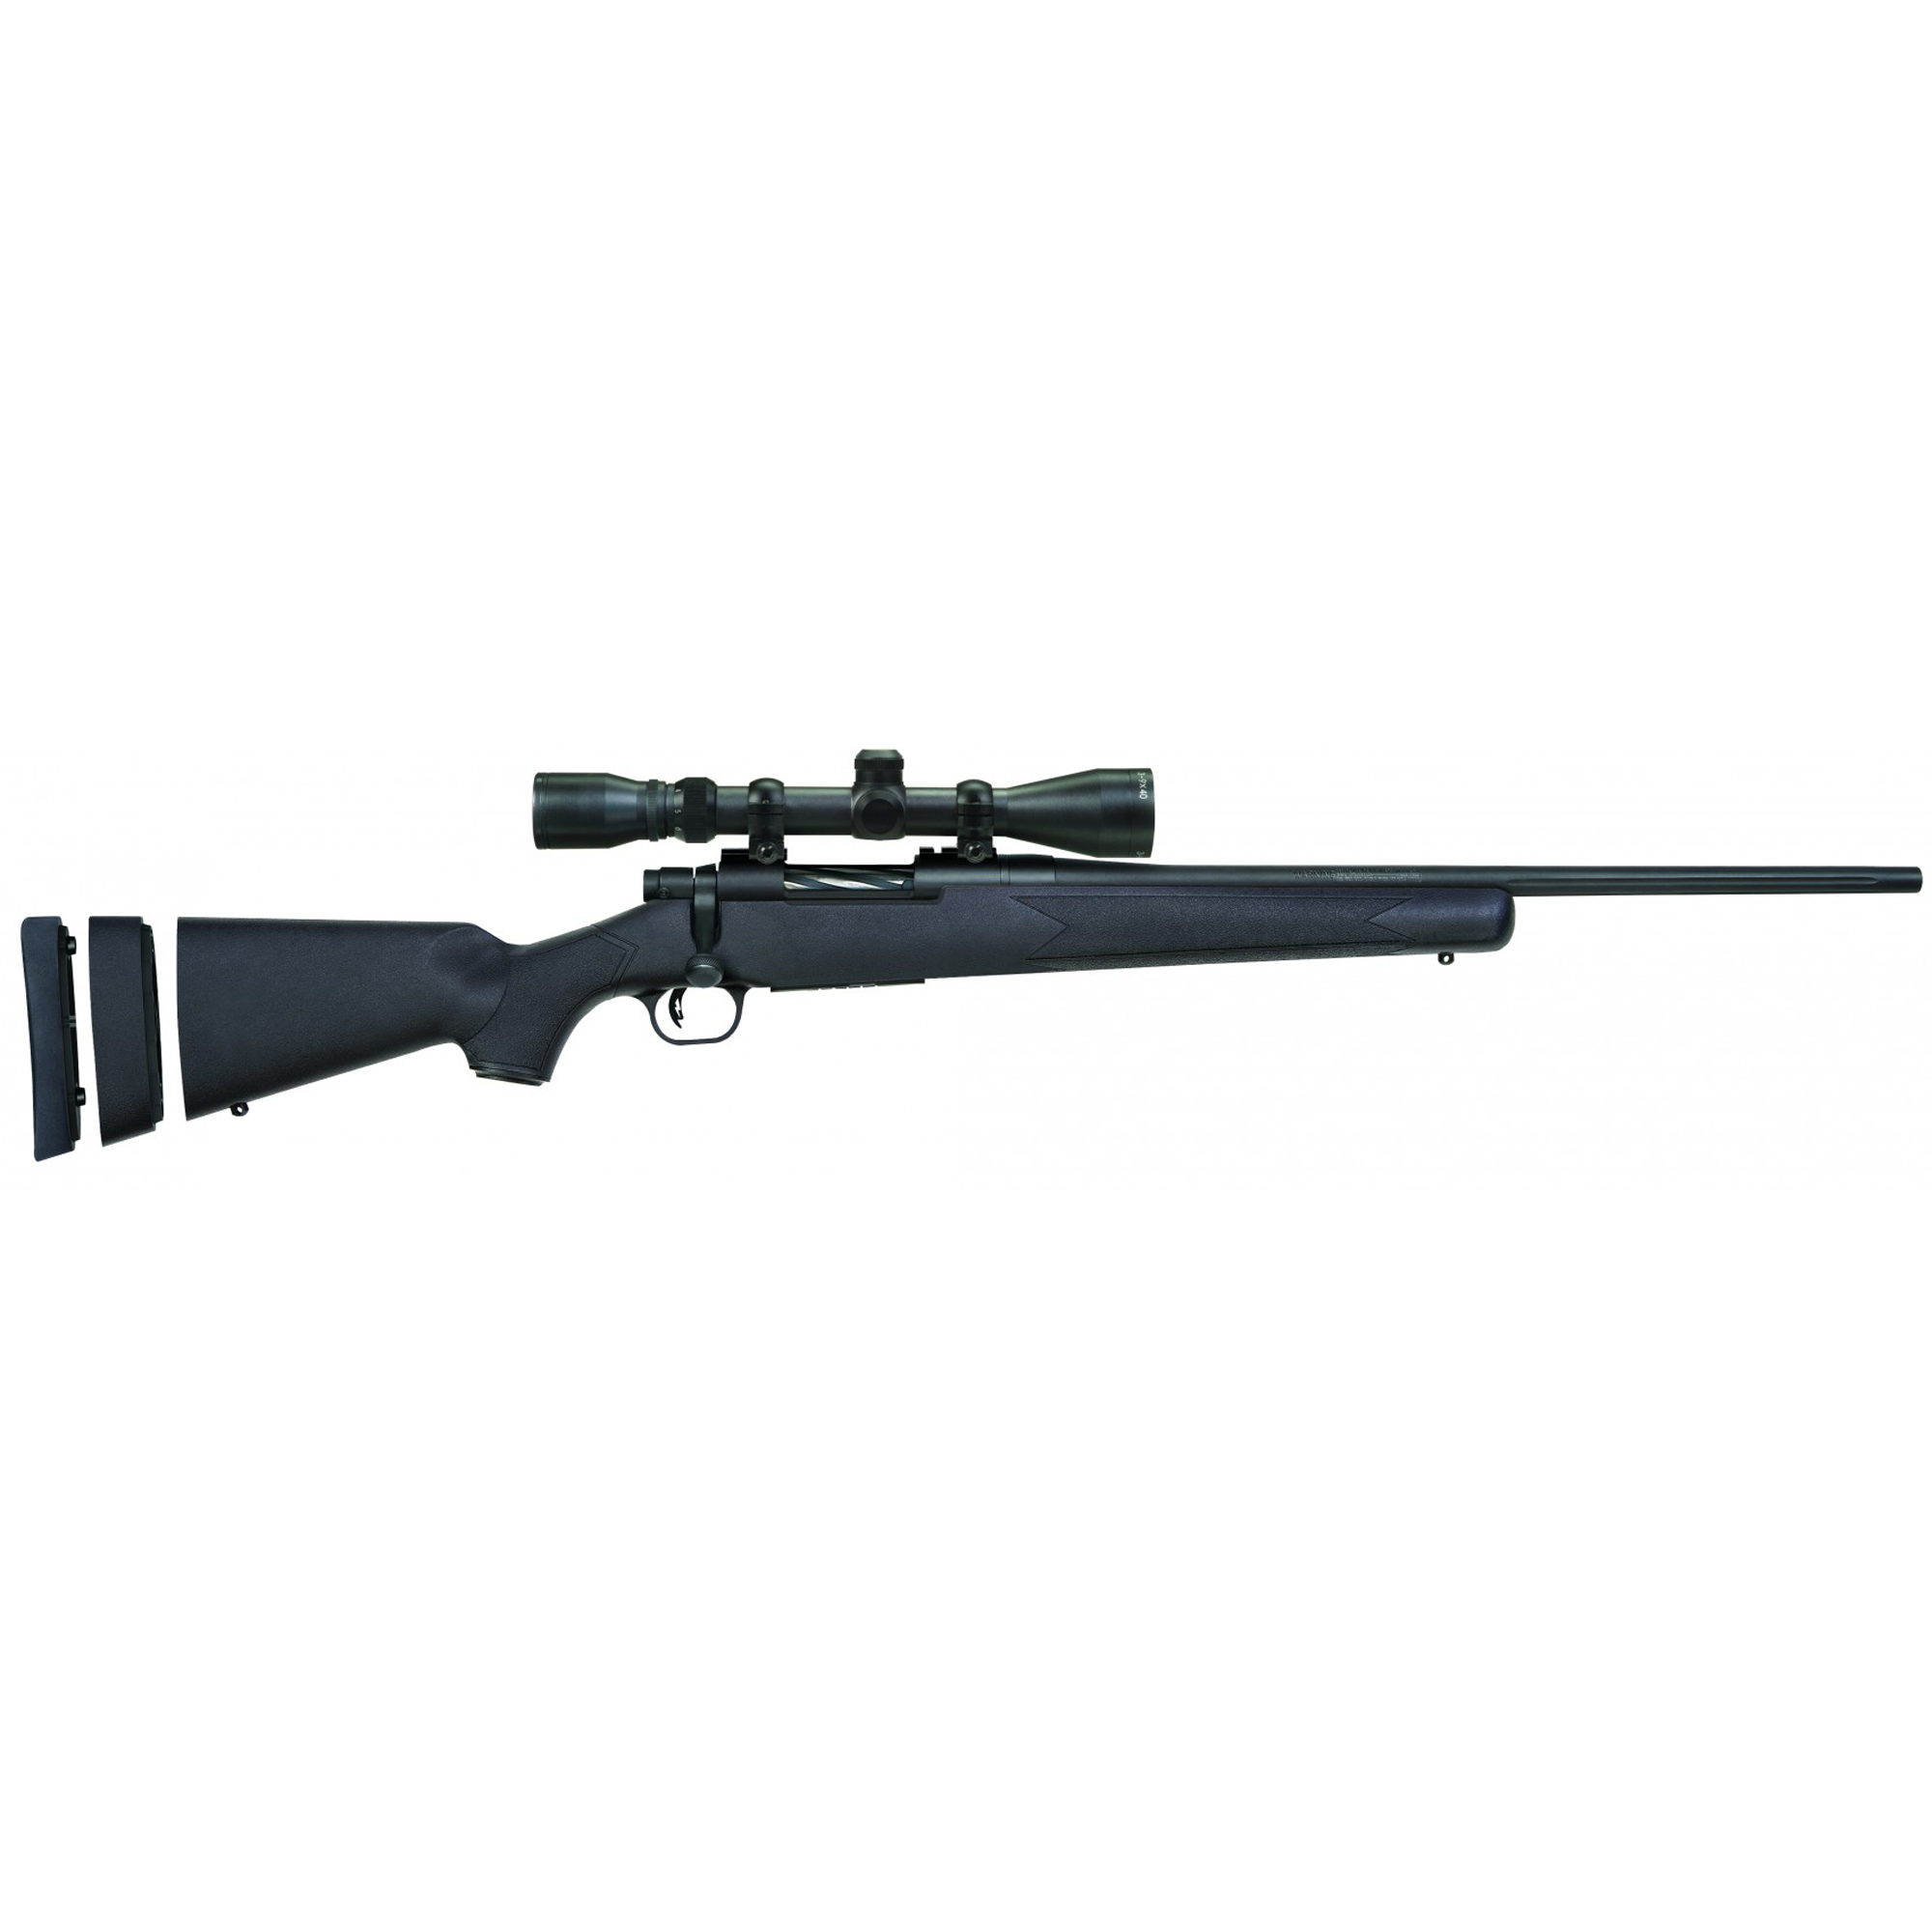 """The Mossberg Patriot-Youth-Super-Bantam-Scoped-Combo looks great on the gun rack and feels great when shouldered. The Patriot's button-rifled fluted barrels are free-floated and have a recessed crown for maximum accuracy. At 20"""" in length"""" the barrel is short enough for quick handling in the densest woods. The Patriot Bantam's attractive spiral fluted bolt features an ergonomic bolt angle and knurled bolt handle offering plenty of grip for quick follow-up shots and enhanced shooter comfort. Its box-magazine-fed action makes loading and unloading a snap."""